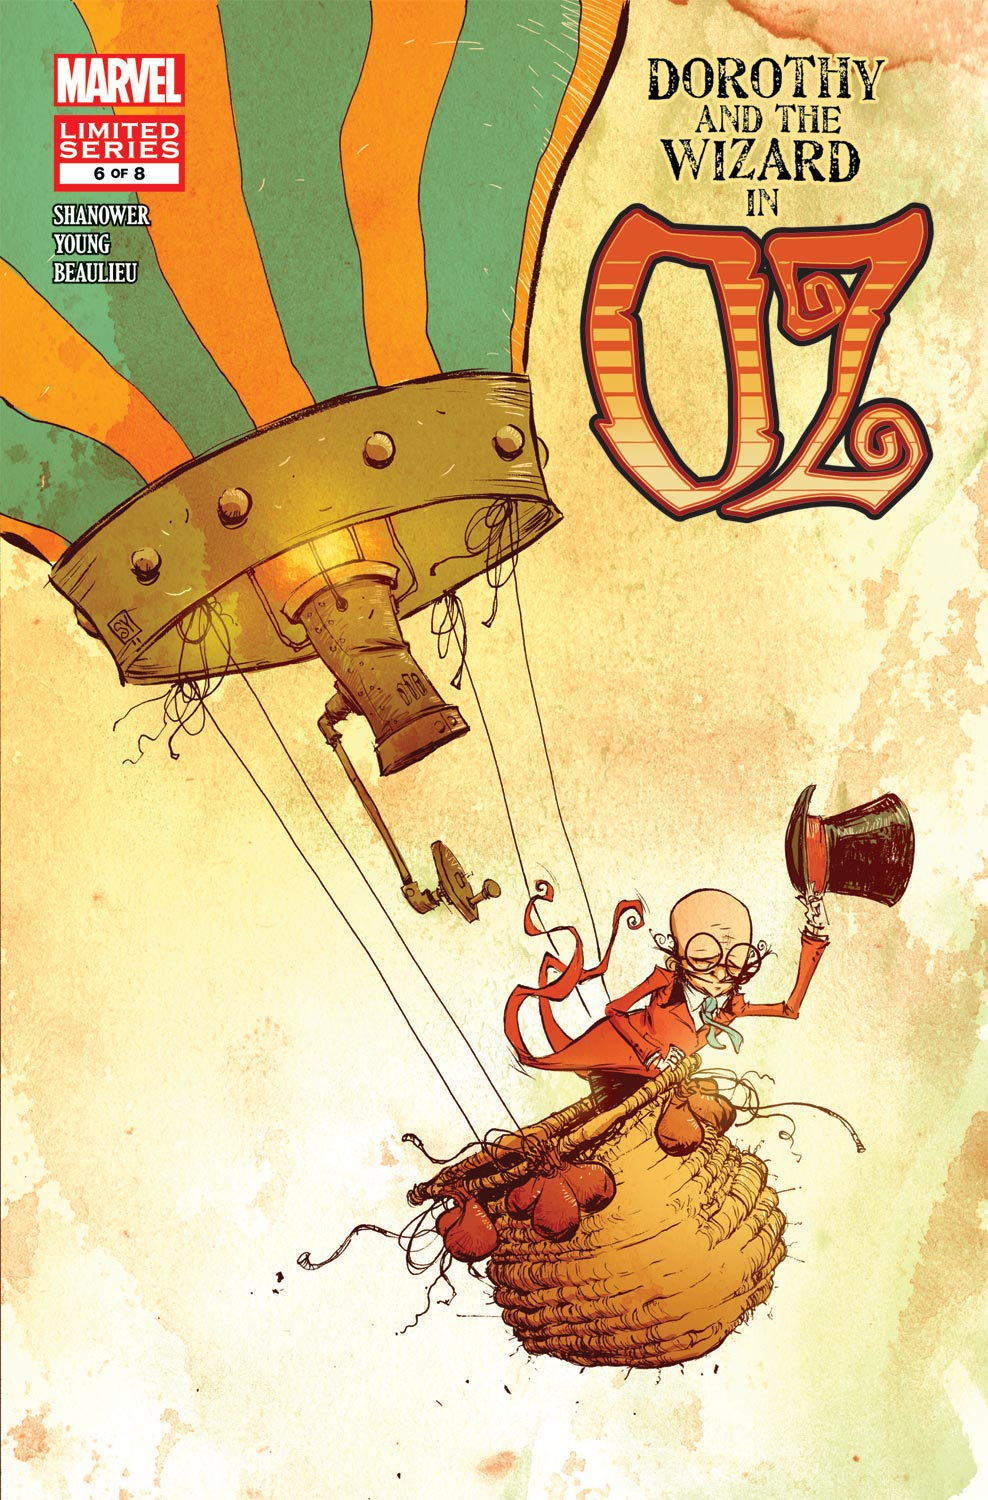 Dorothy & the Wizard in Oz (2010) #6